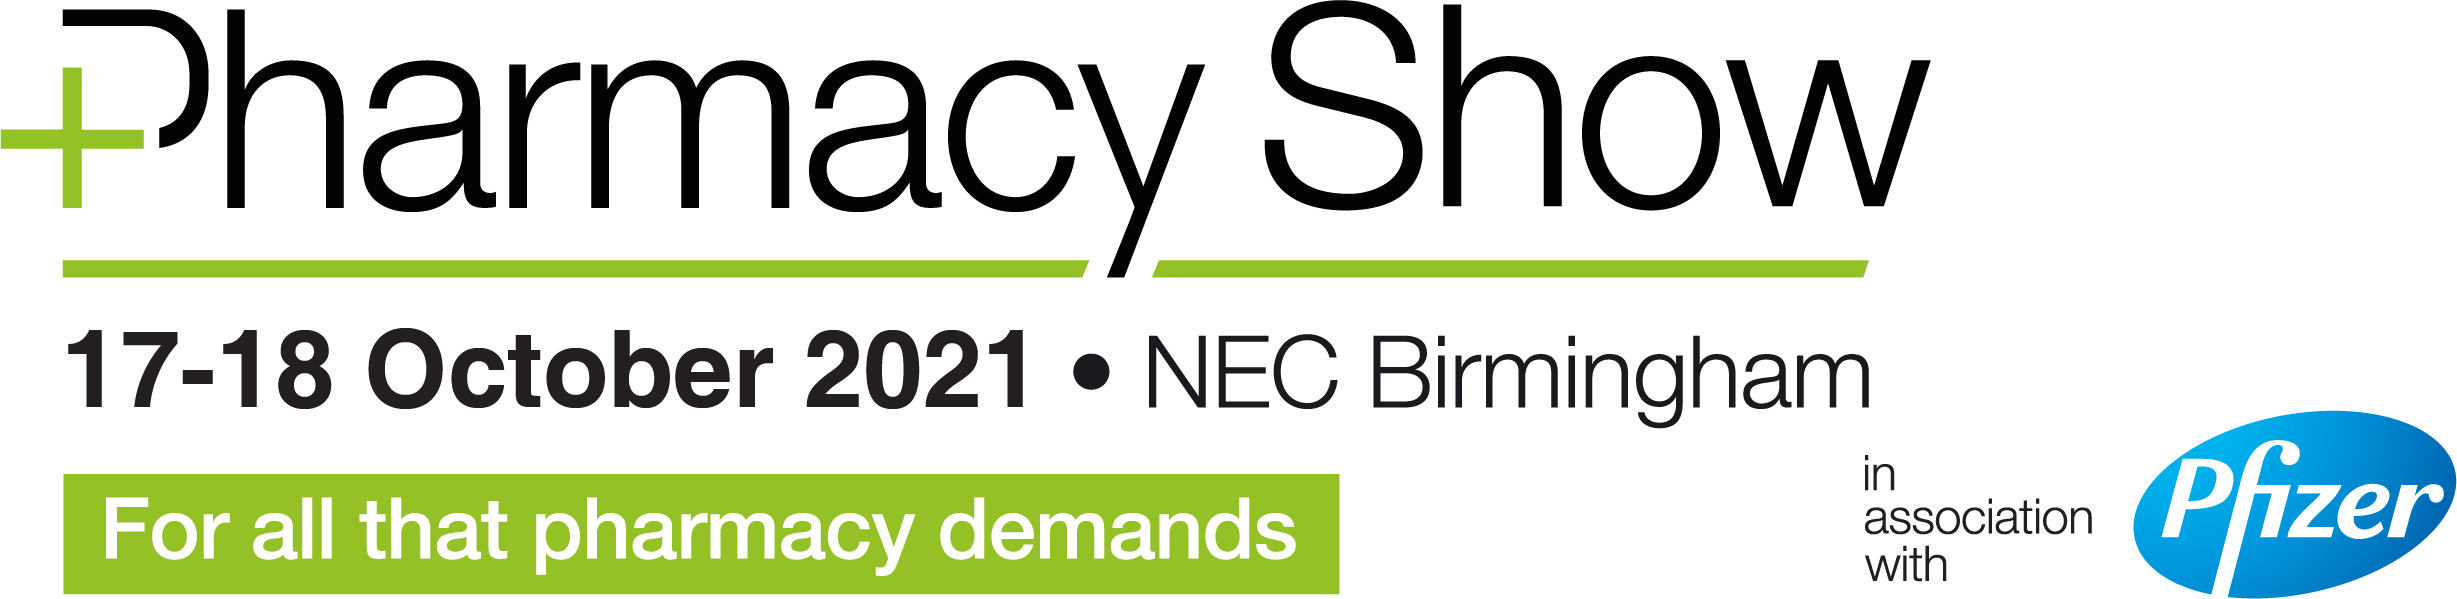 The Pharmacy Show will take place 17th & 18th October 2021 at Birmingham NEC